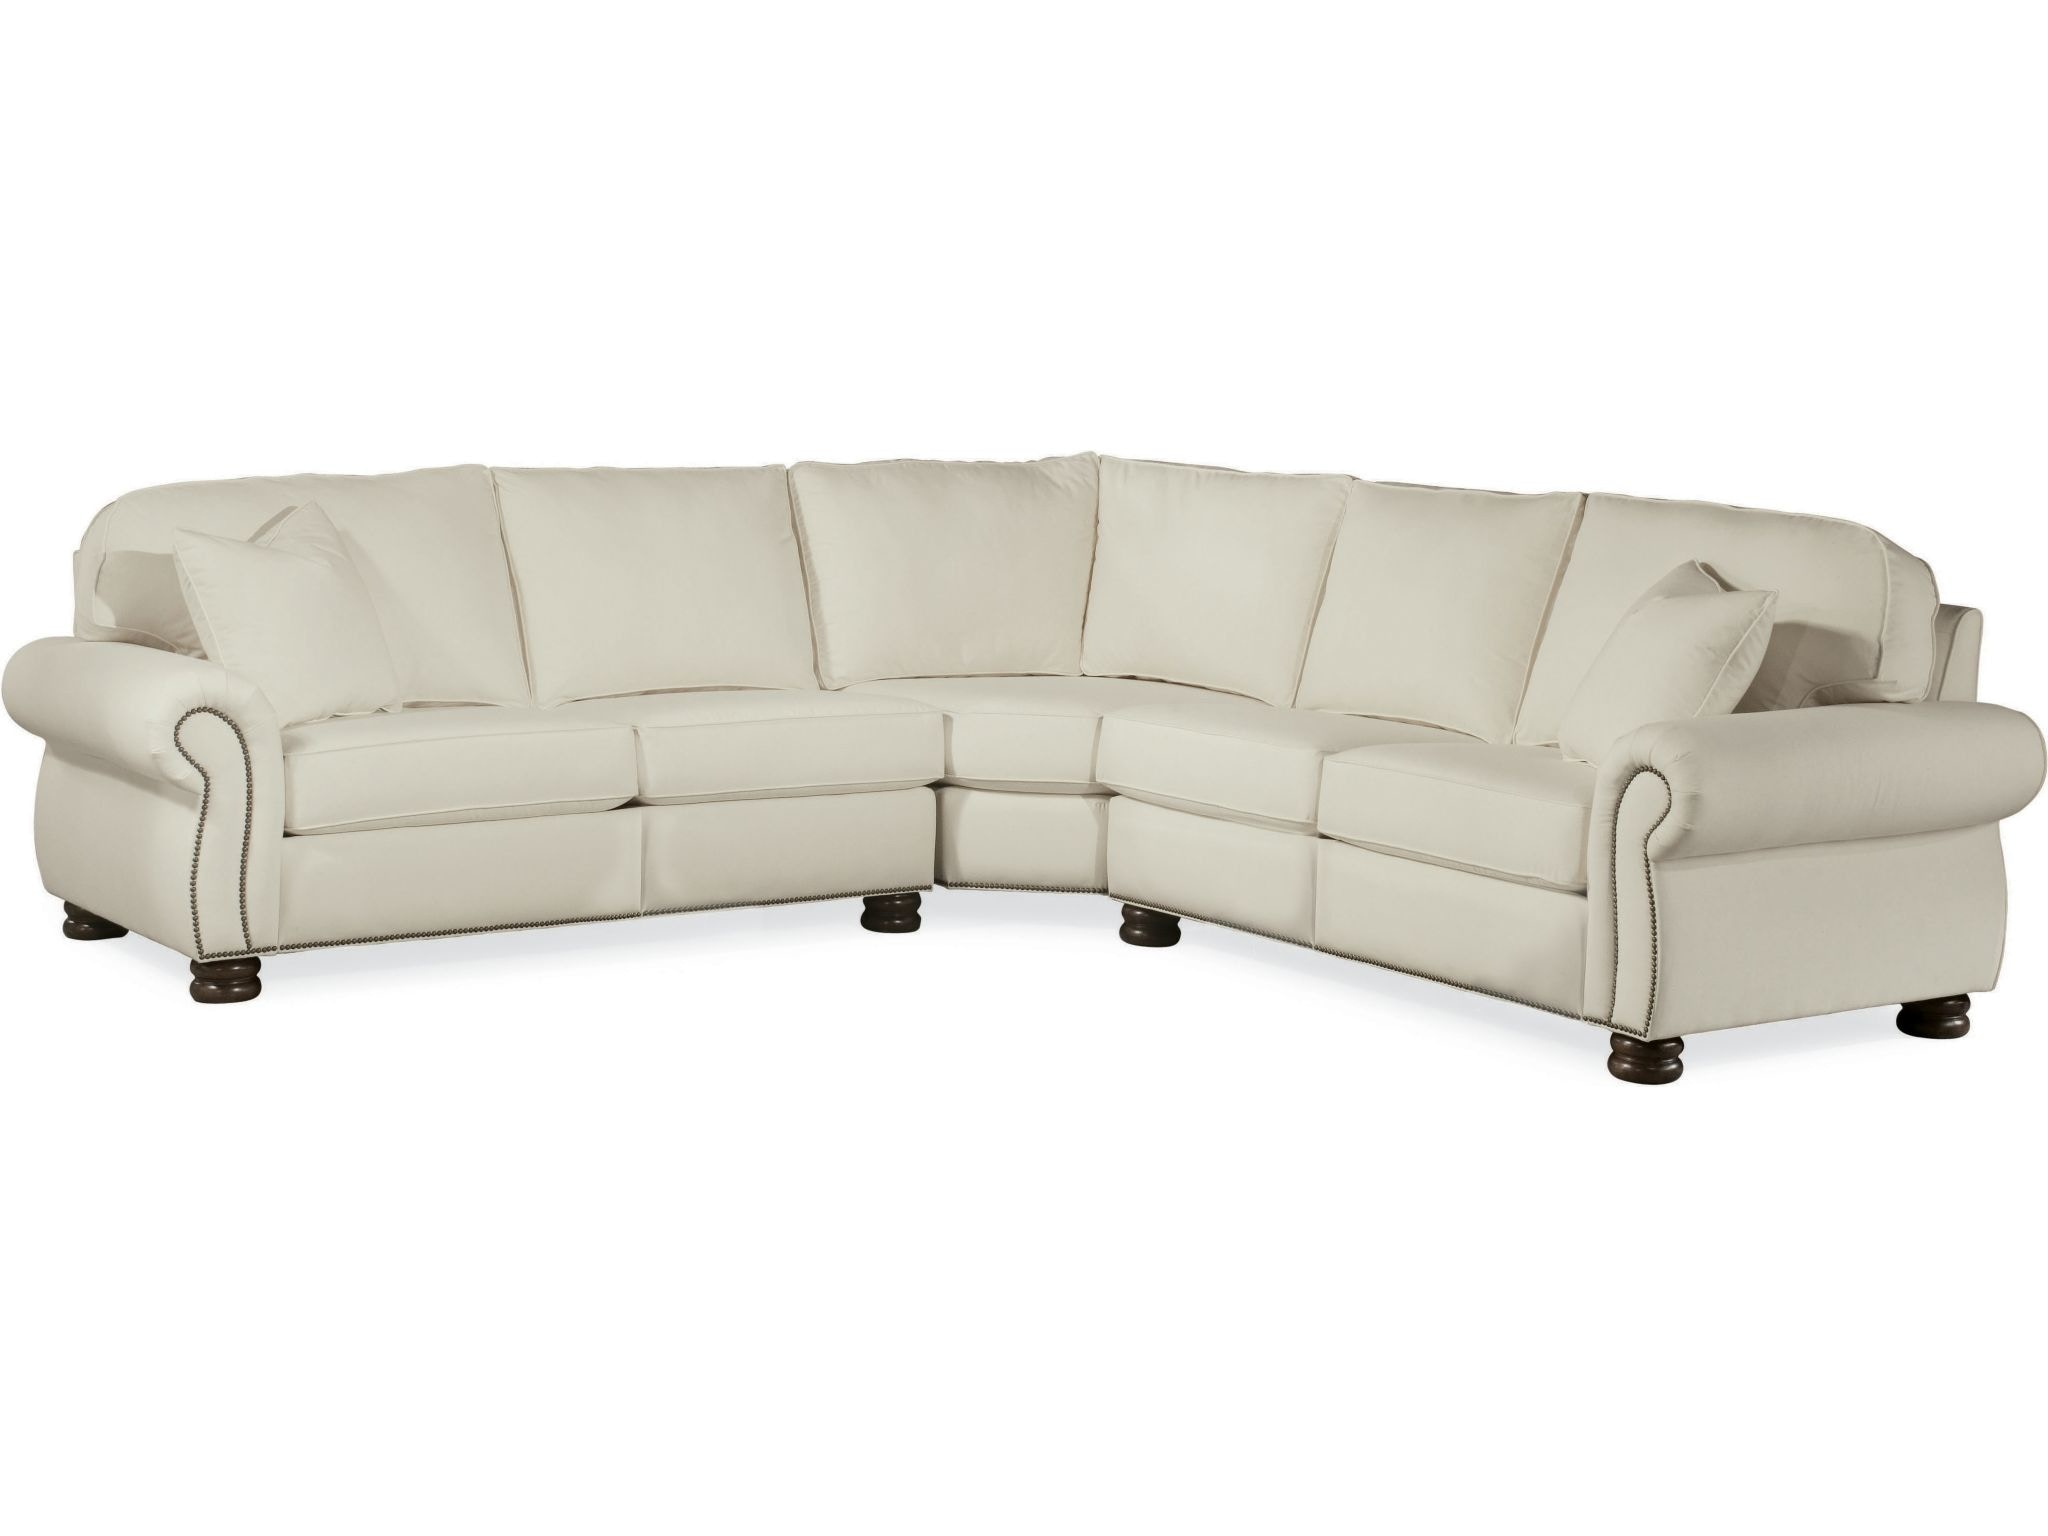 thomasville benjamin sofa ethan allen bed reviews living room motion sectional hs1461